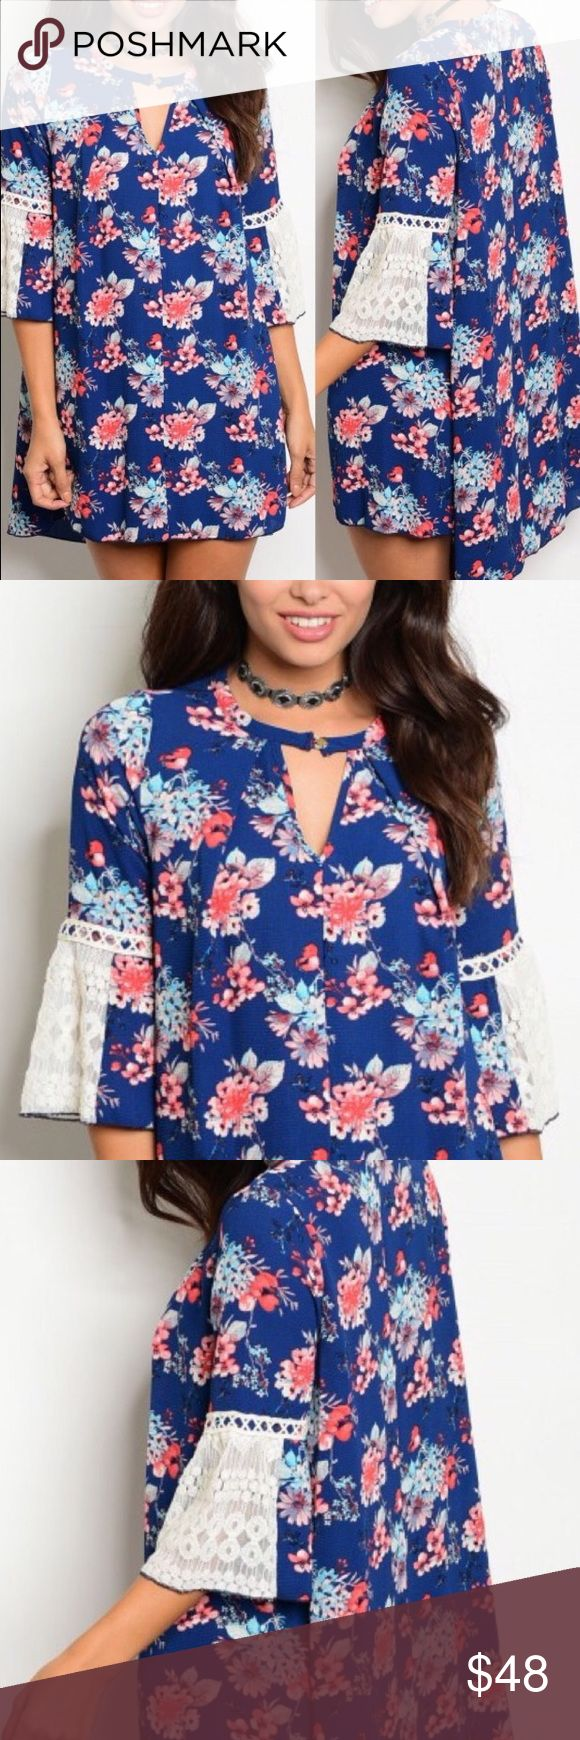 New ArrivalNavy Floral Bell Sleeve Dress This dress is awesome! Navy background with a flower pattern. The sleeves are embellished with lace. Choker look without the choker feel! 97% polyester 3% spandex Buy single piece or add to a bundle for savings at purchase. No trading. Price is firm. Boutique Dresses Mini